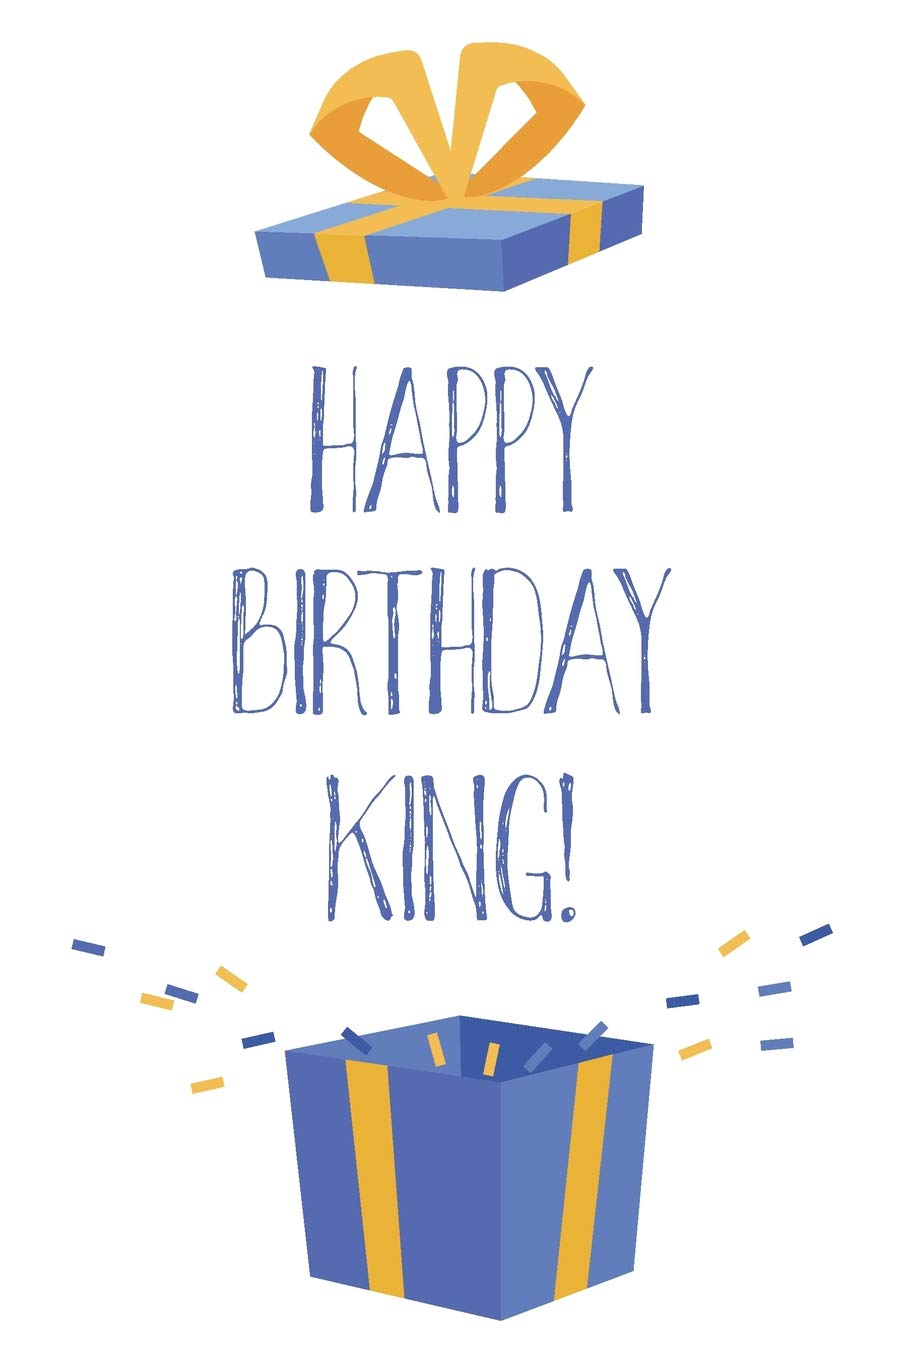 Happy Birthday King Cool Personalized First Name King Birthday Card Journal Notebook Diary Greetings Appreciation Gift For Boys 6 X 9 110 Blank Lined Pages Publishing Thrice 9781073413812 Amazon Com Books